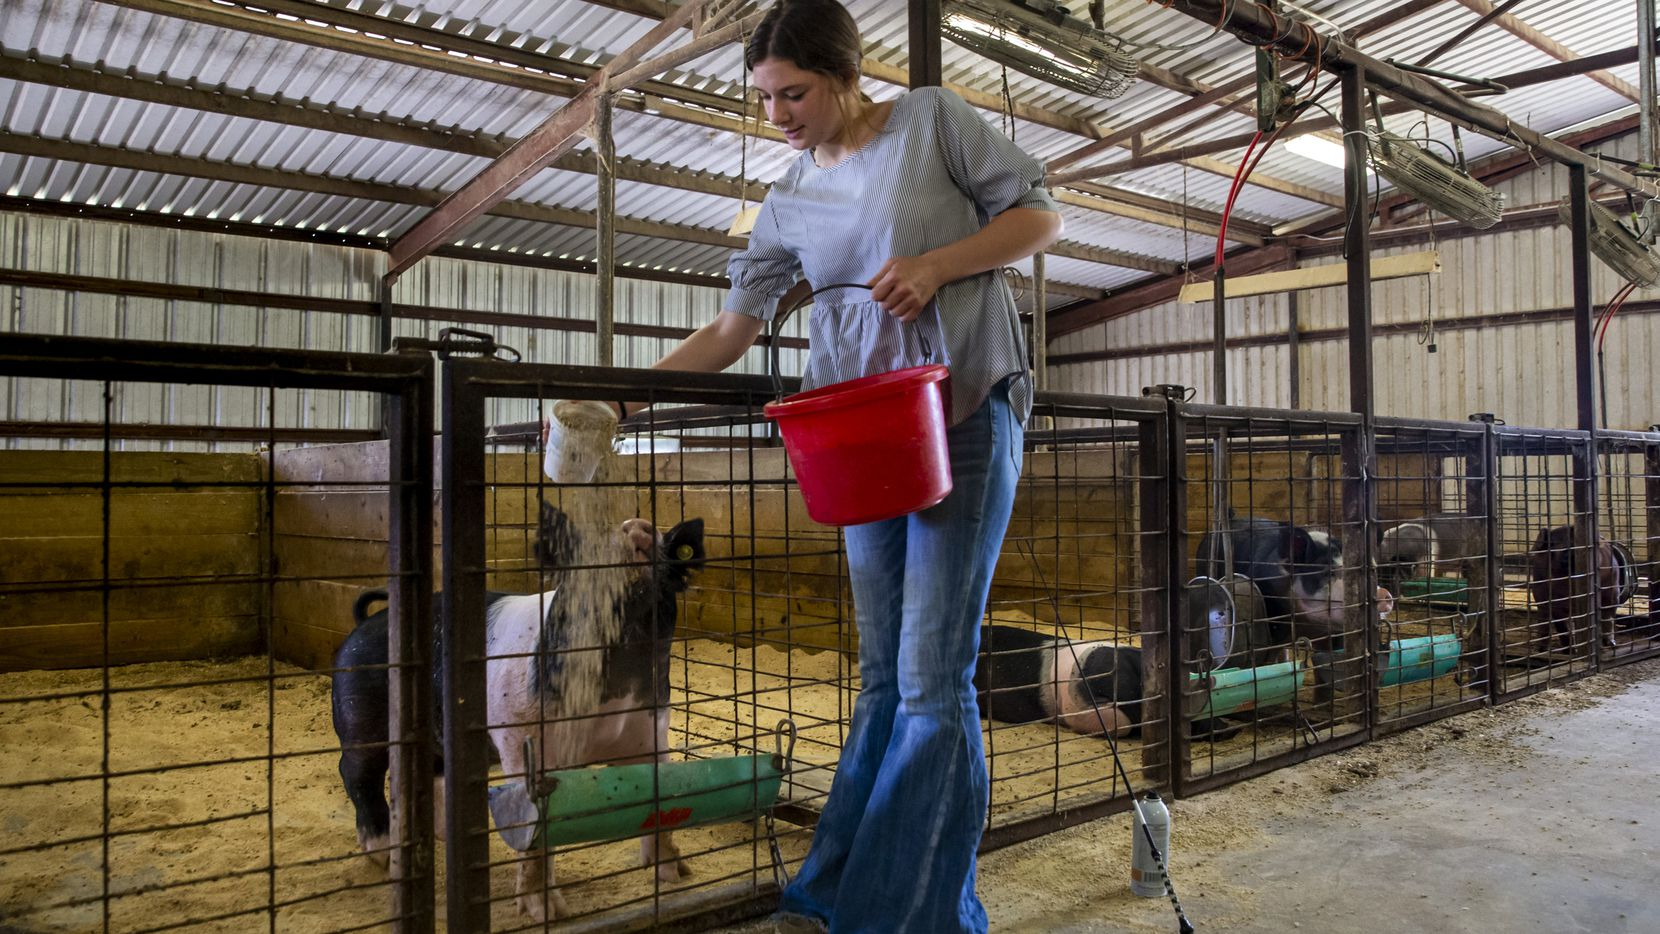 Savannah Robison feeds her show pigs at the Lake Dallas FFA Ag Barn in Denton, on July 19,. Robison is one of the youth who is preparing to compete in the State Fair's modified youth livestock shows this year.